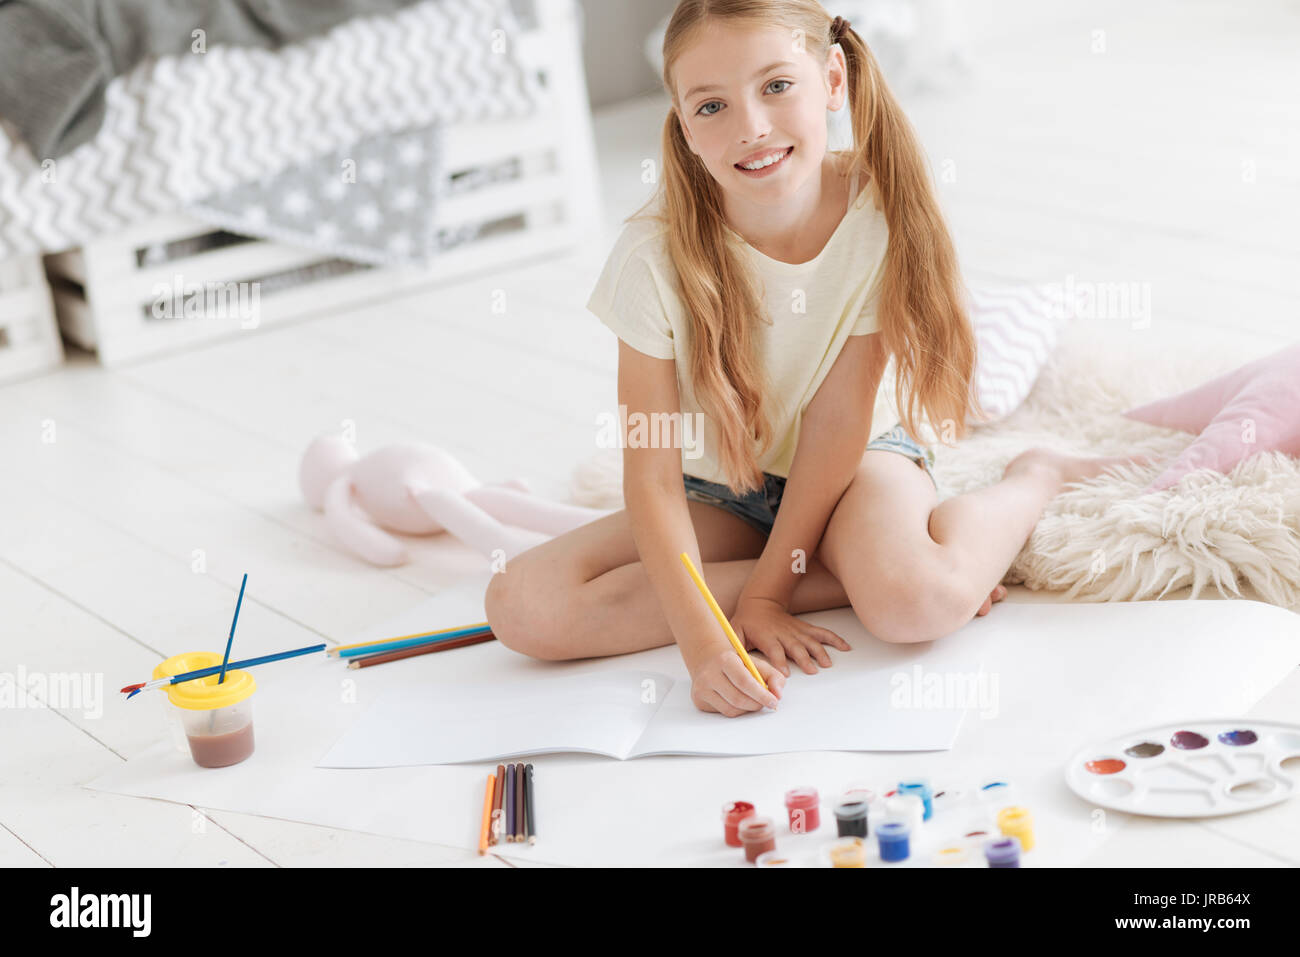 Beautiful girl looking into camera while drawing - Stock Image